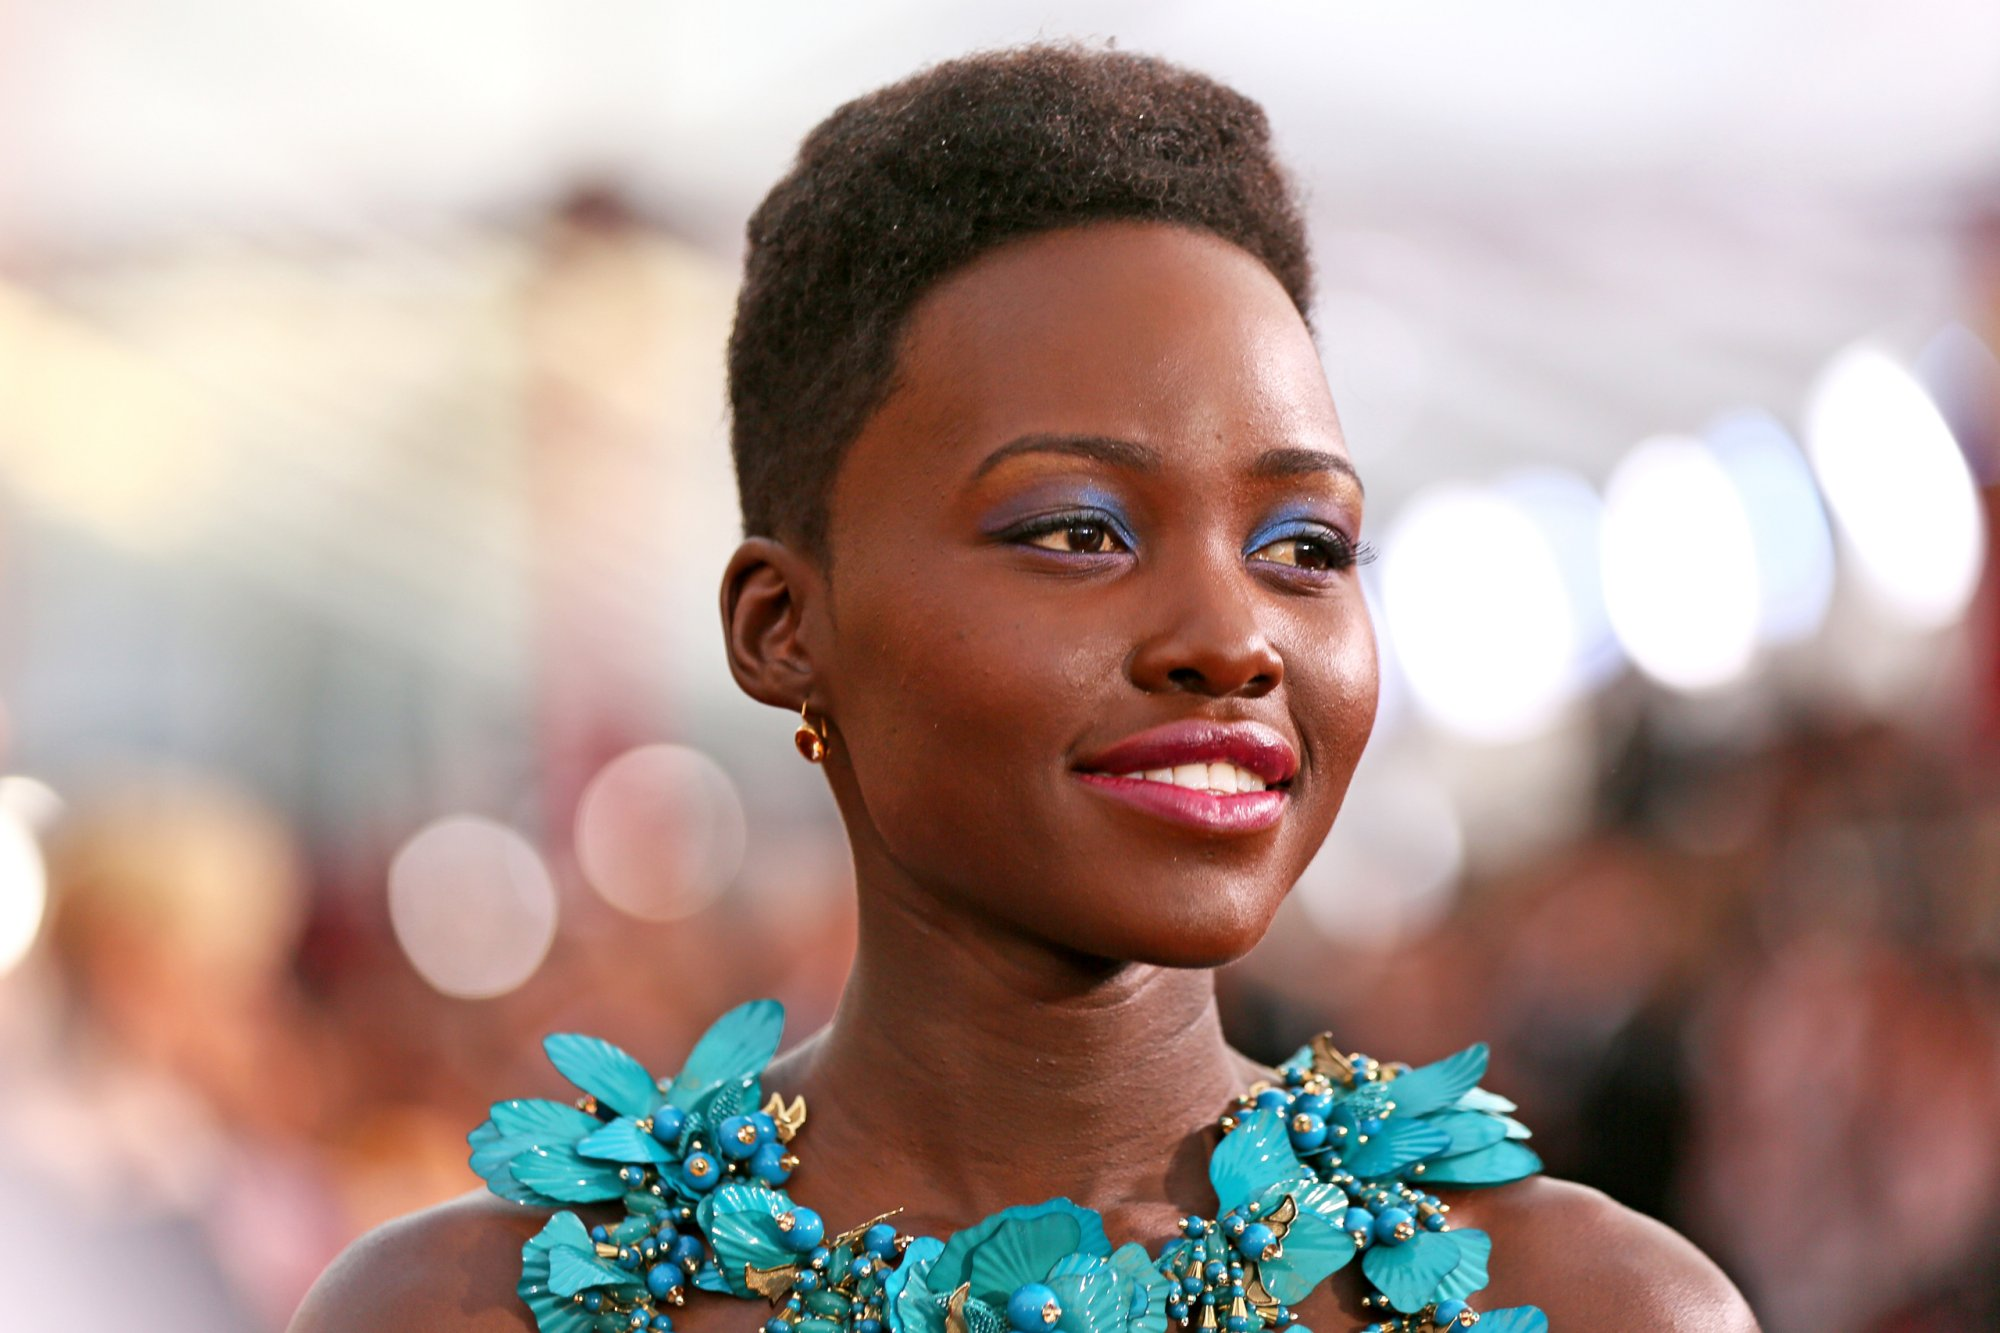 Lupita Nyong'o Confesses That Harvey Weinstein Tried to Sexually Assault Her